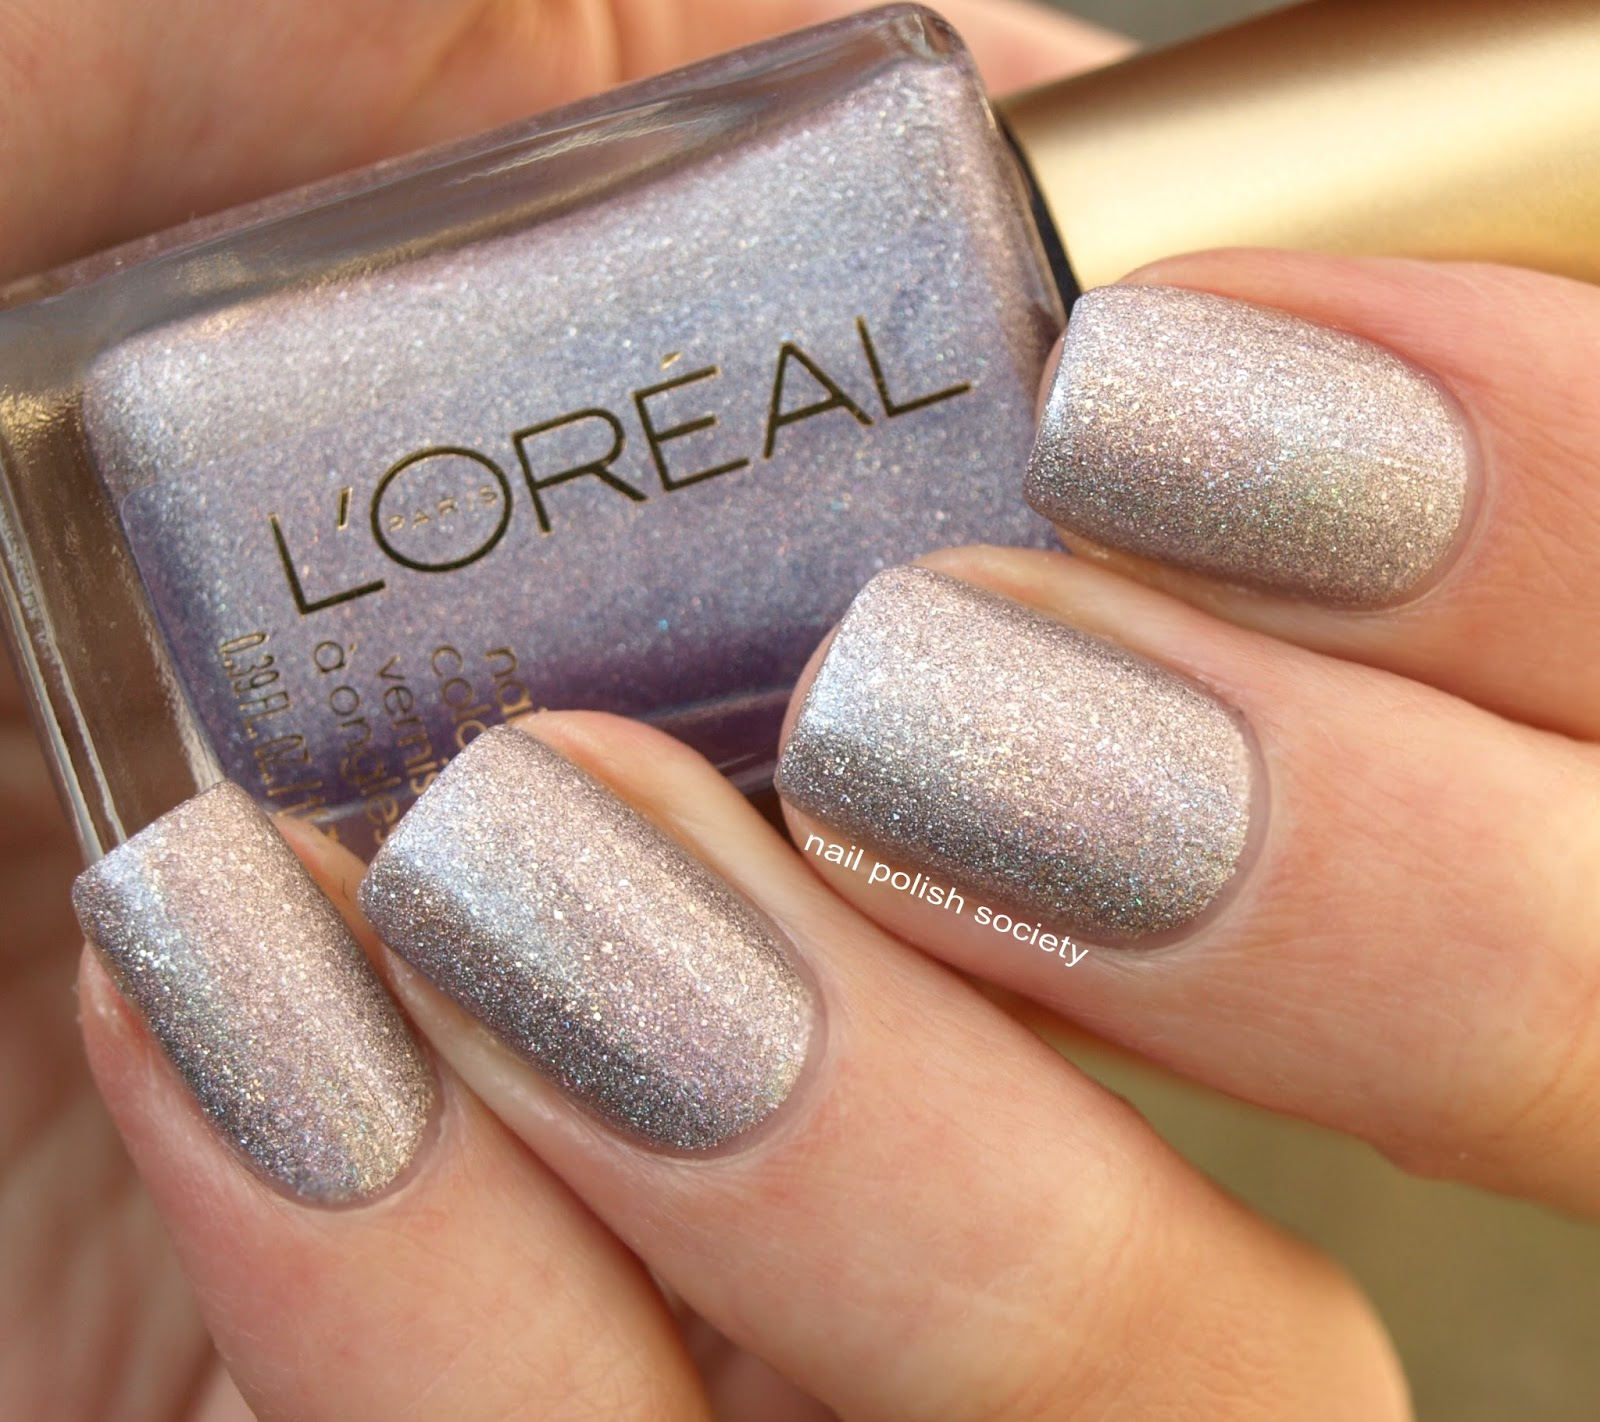 Nail Polish Society: L\'Oréal Masked Affair Swatches and Review